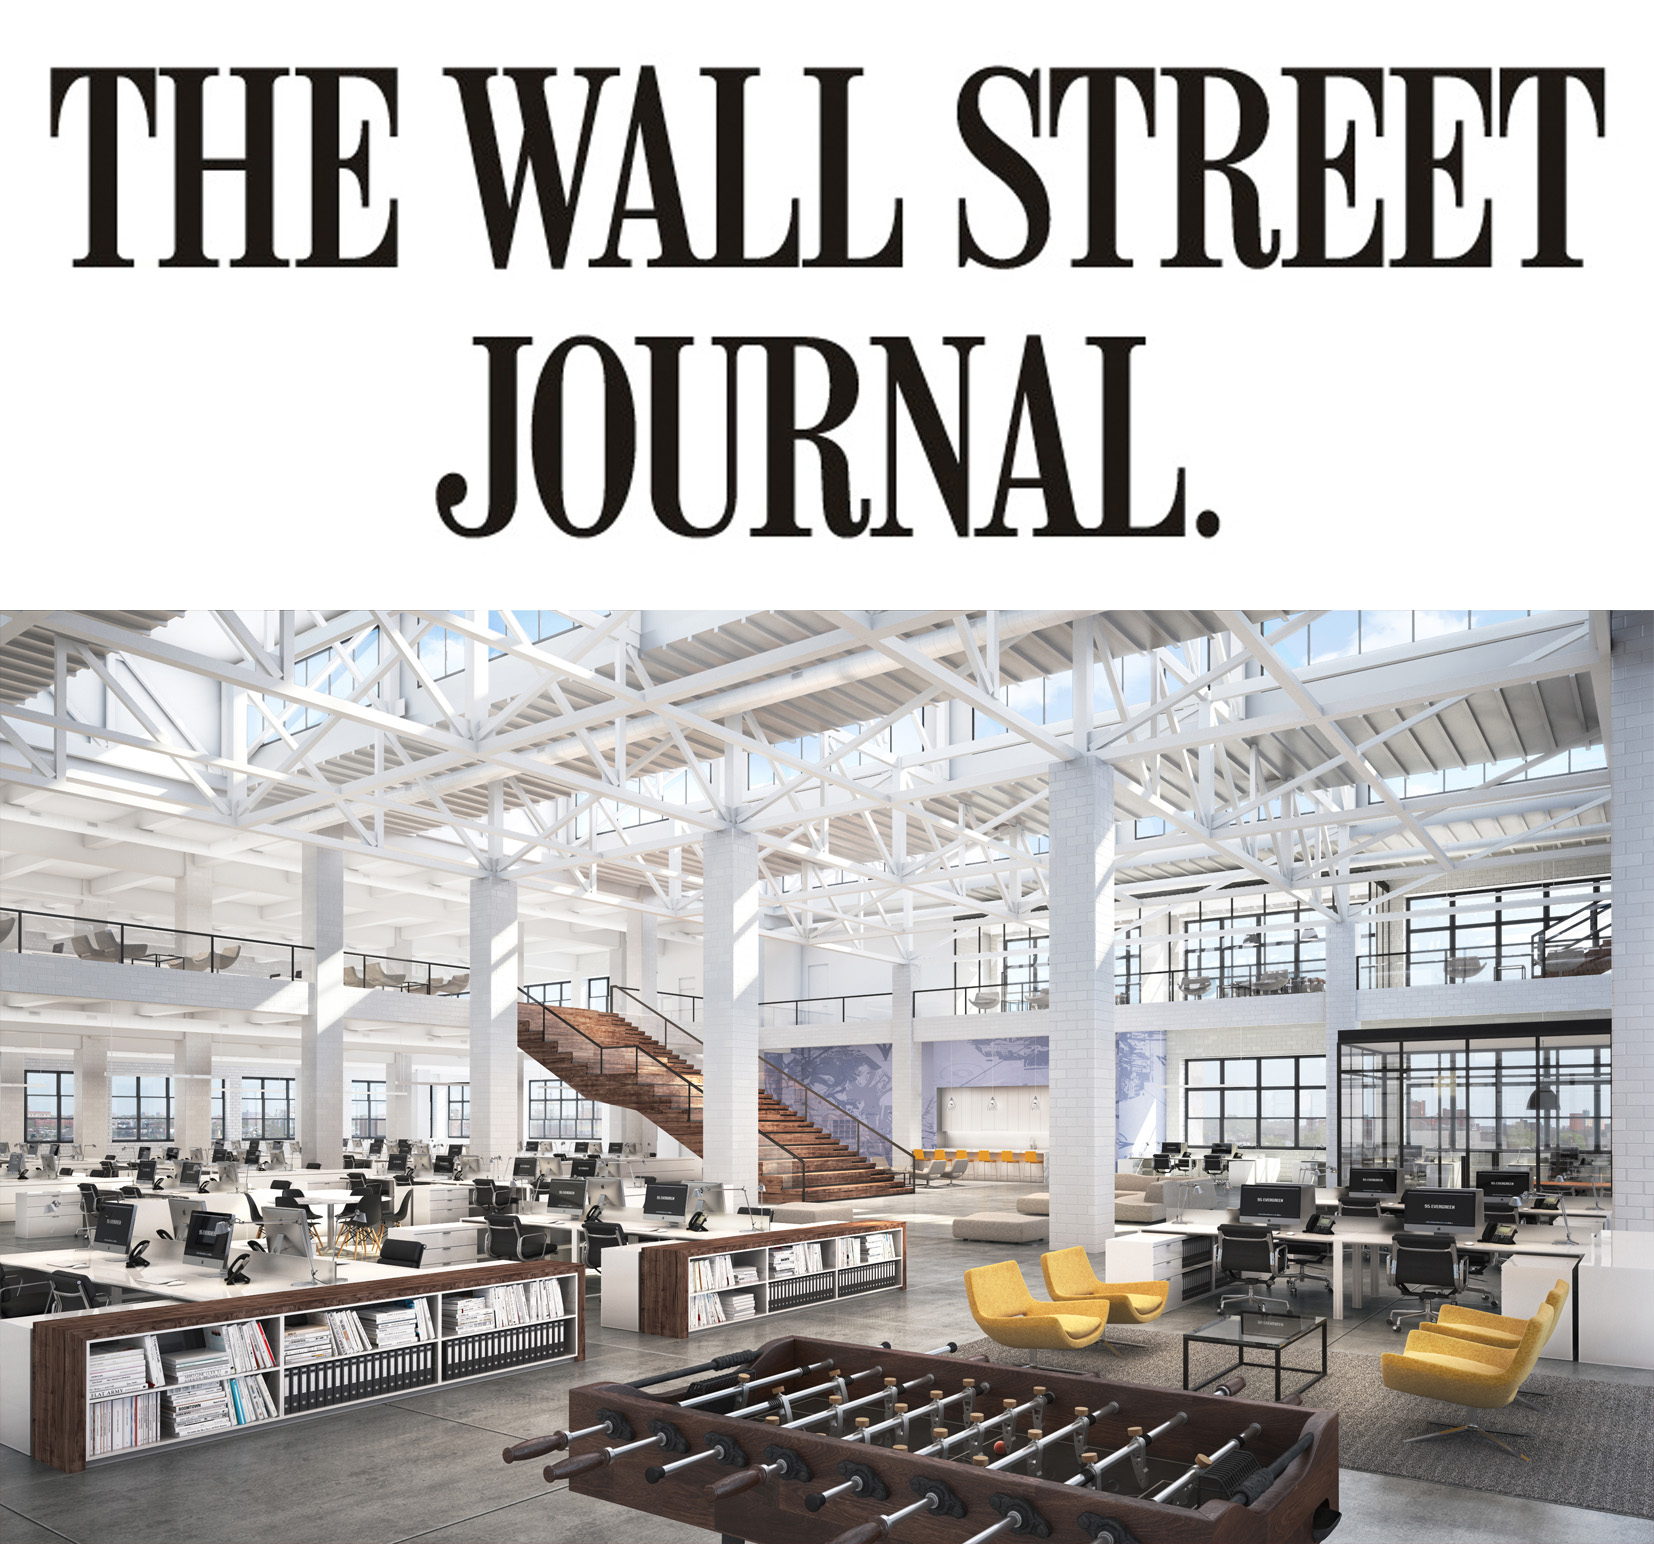 Image Result For Aapl Stock Price News Apple Inc Wall Street Journal